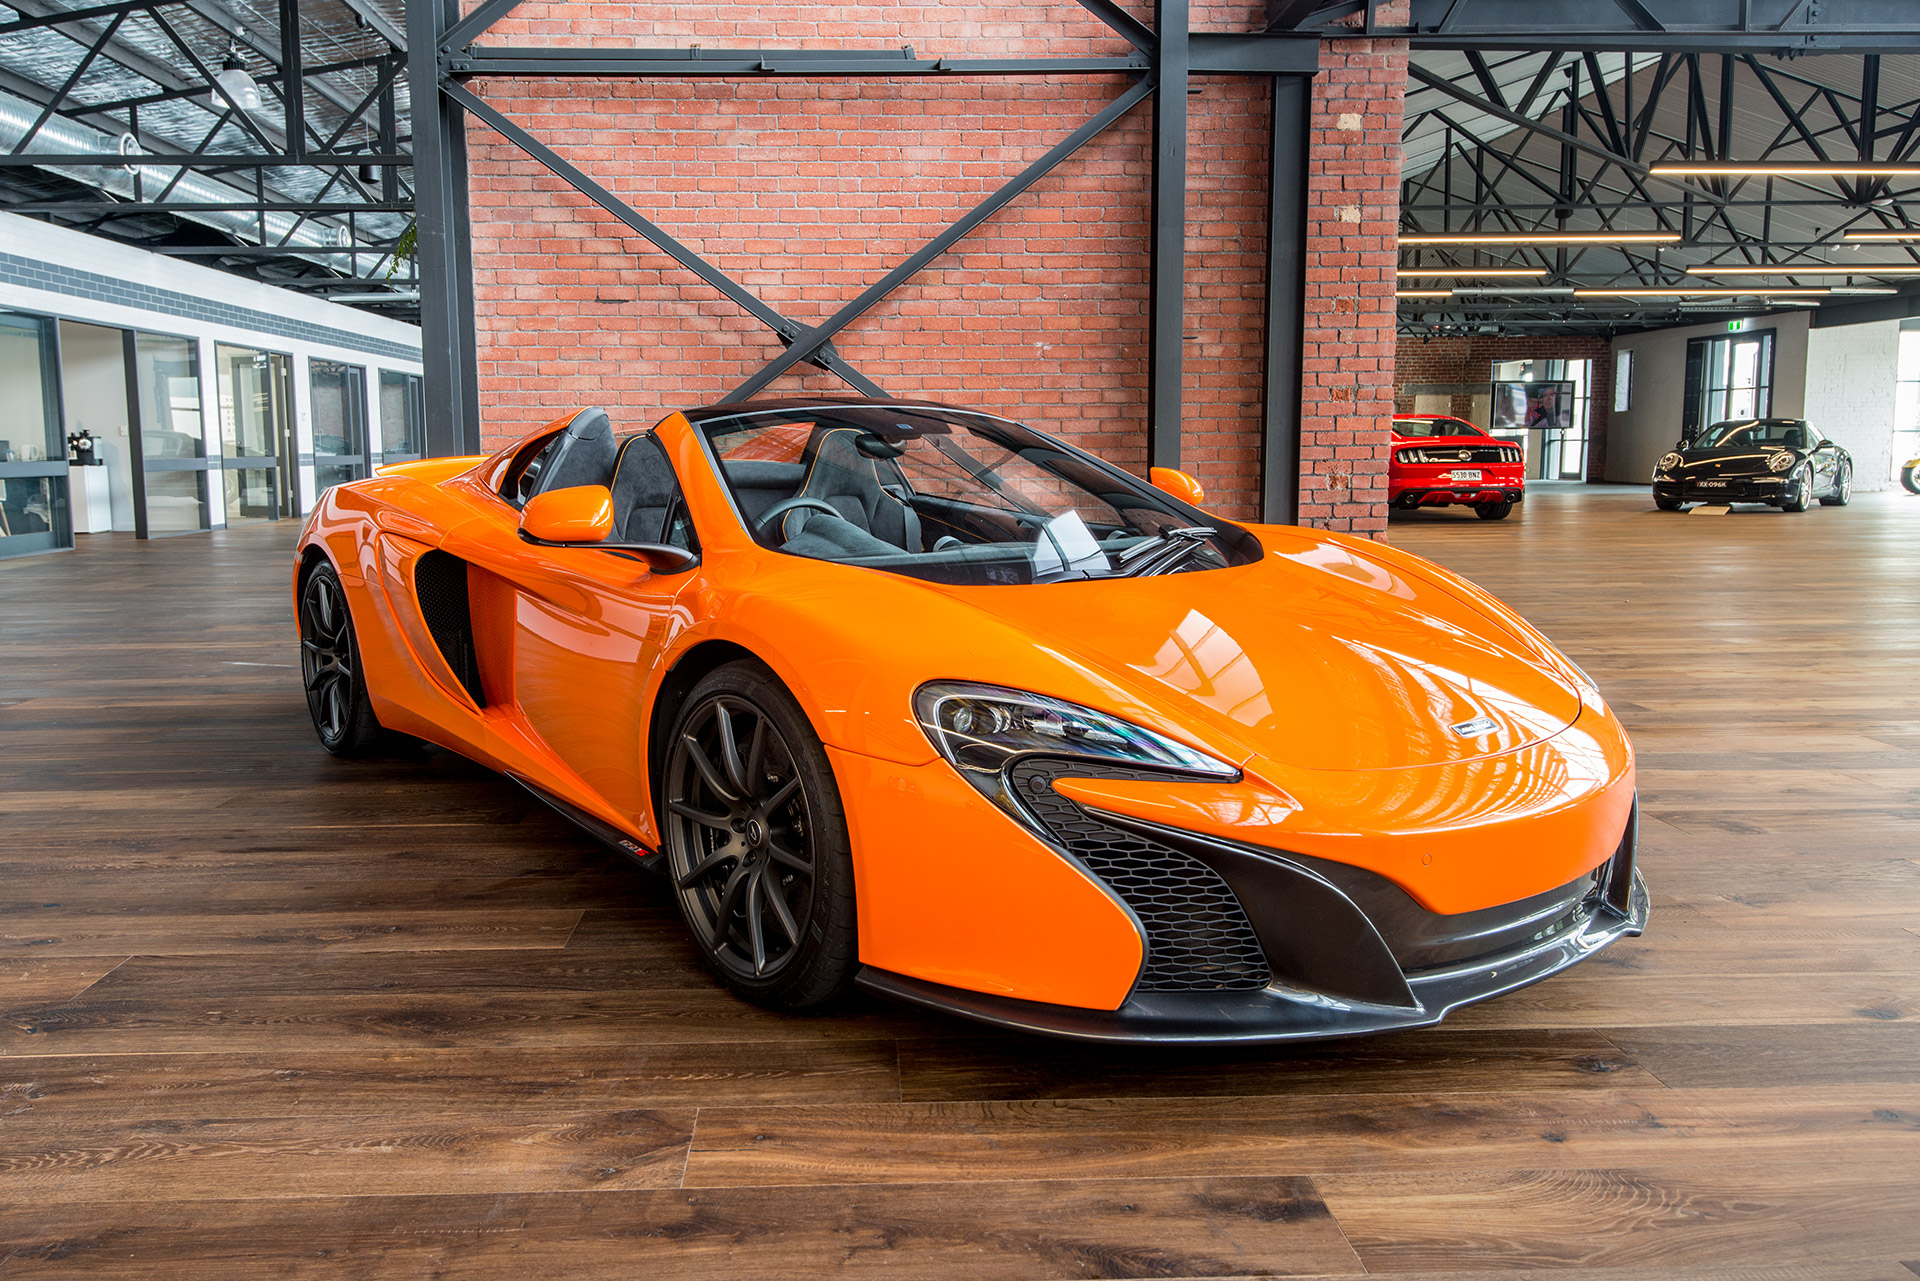 my15 mclaren 650s spider - richmonds - classic and prestige cars